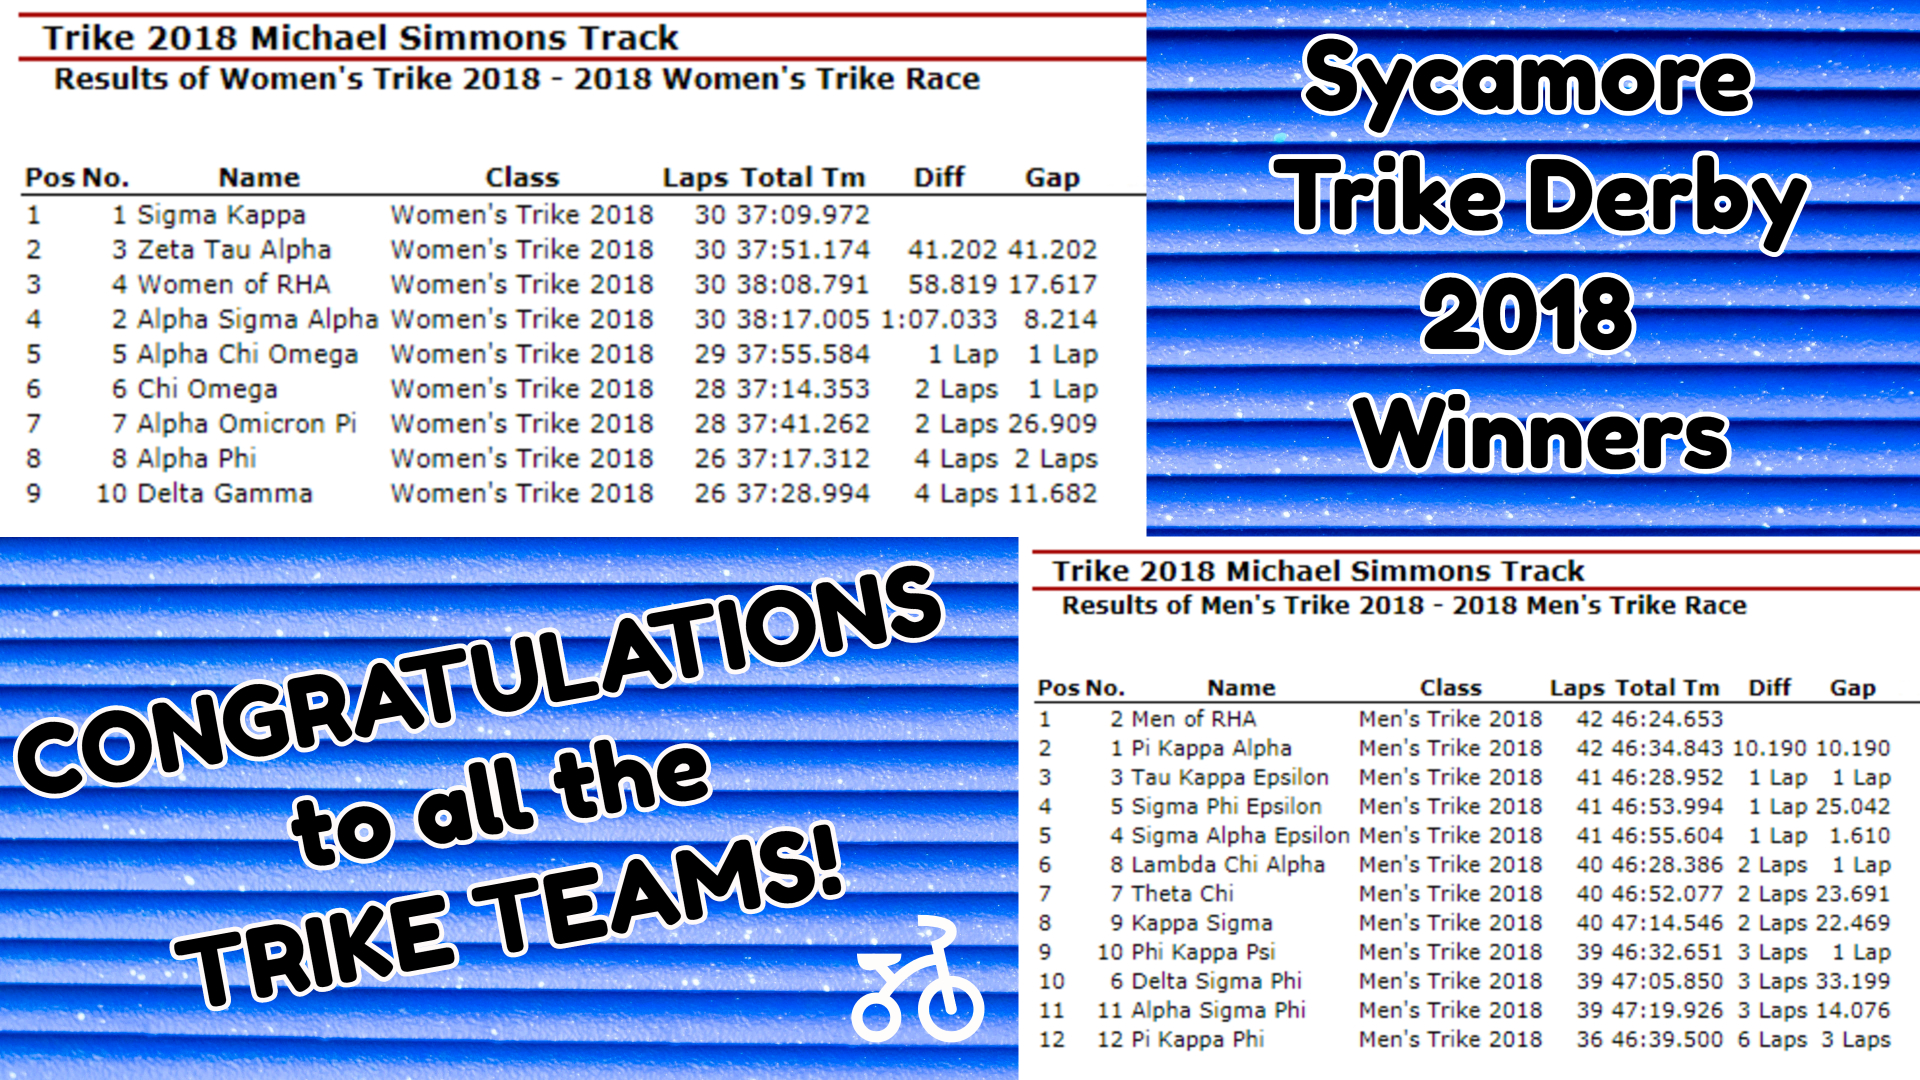 Sycamore Trike Derby WINNERS stats 2018